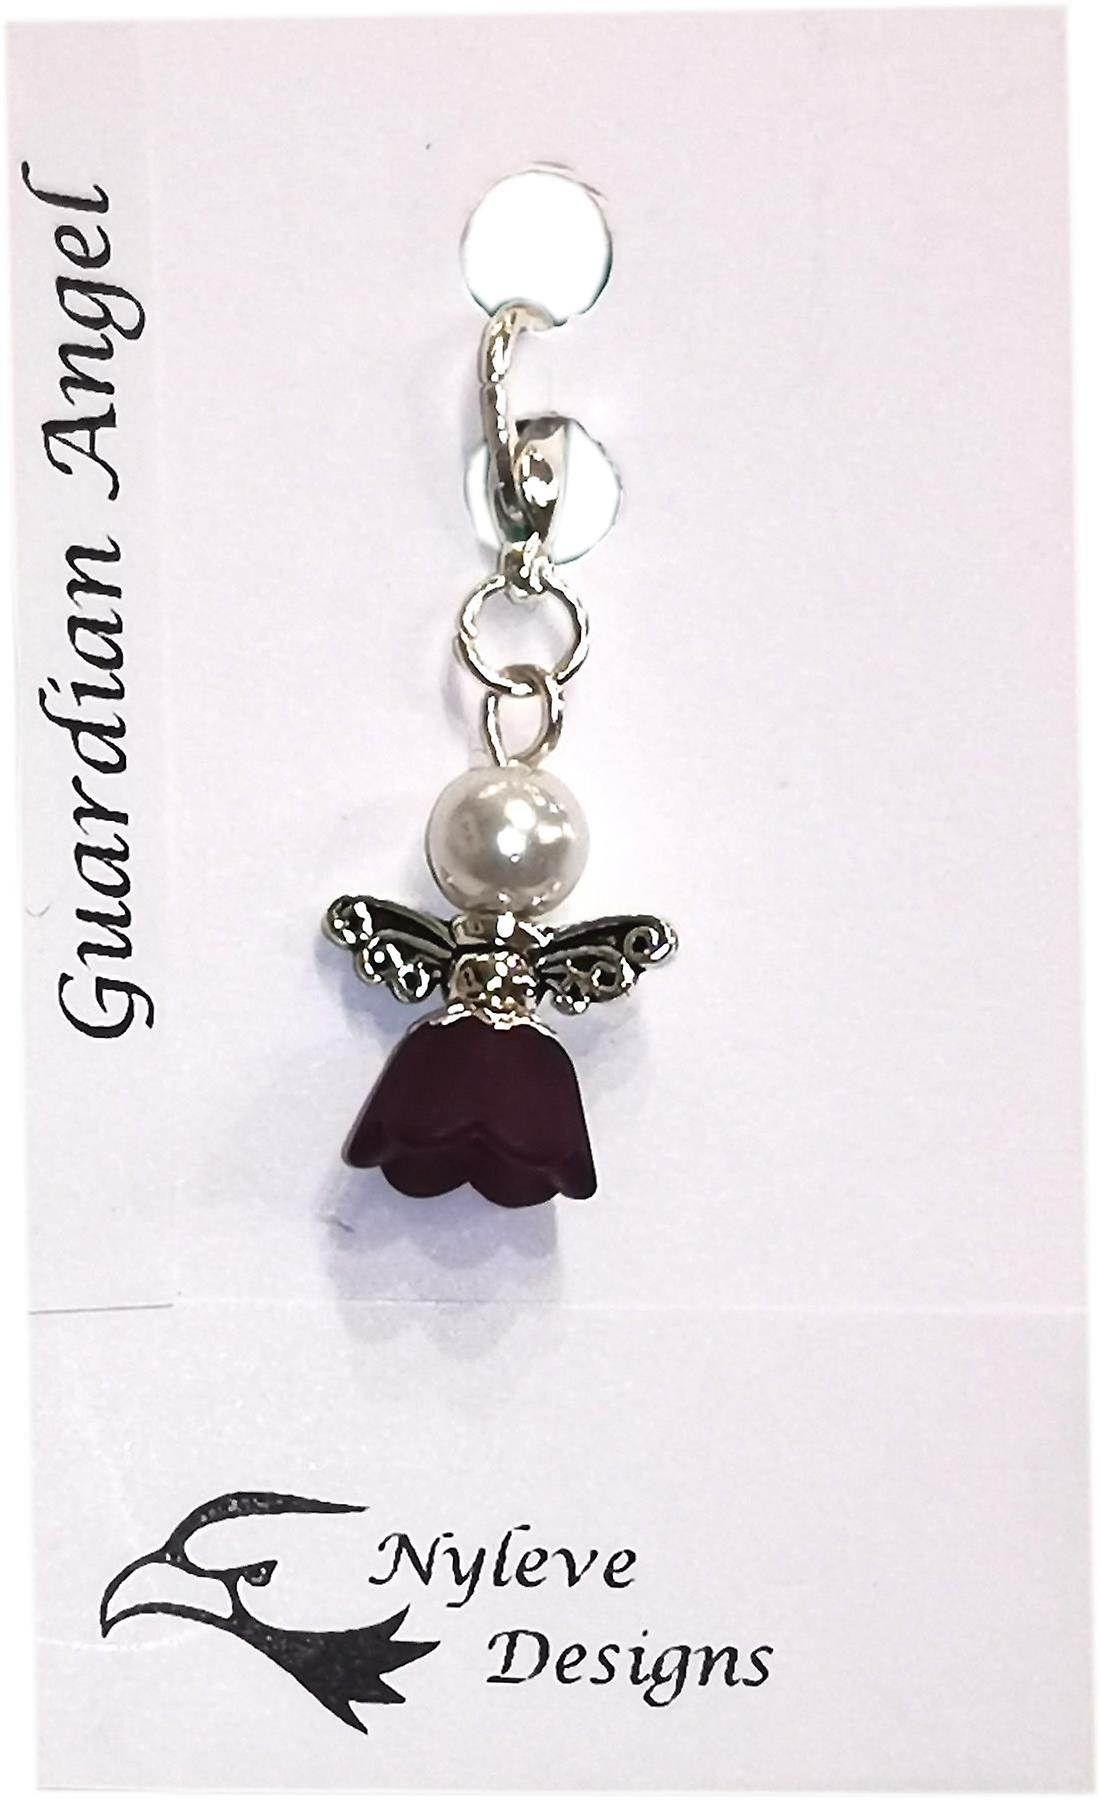 Nyleve Designs handmade Clip-on Angel/Fairy Charm White